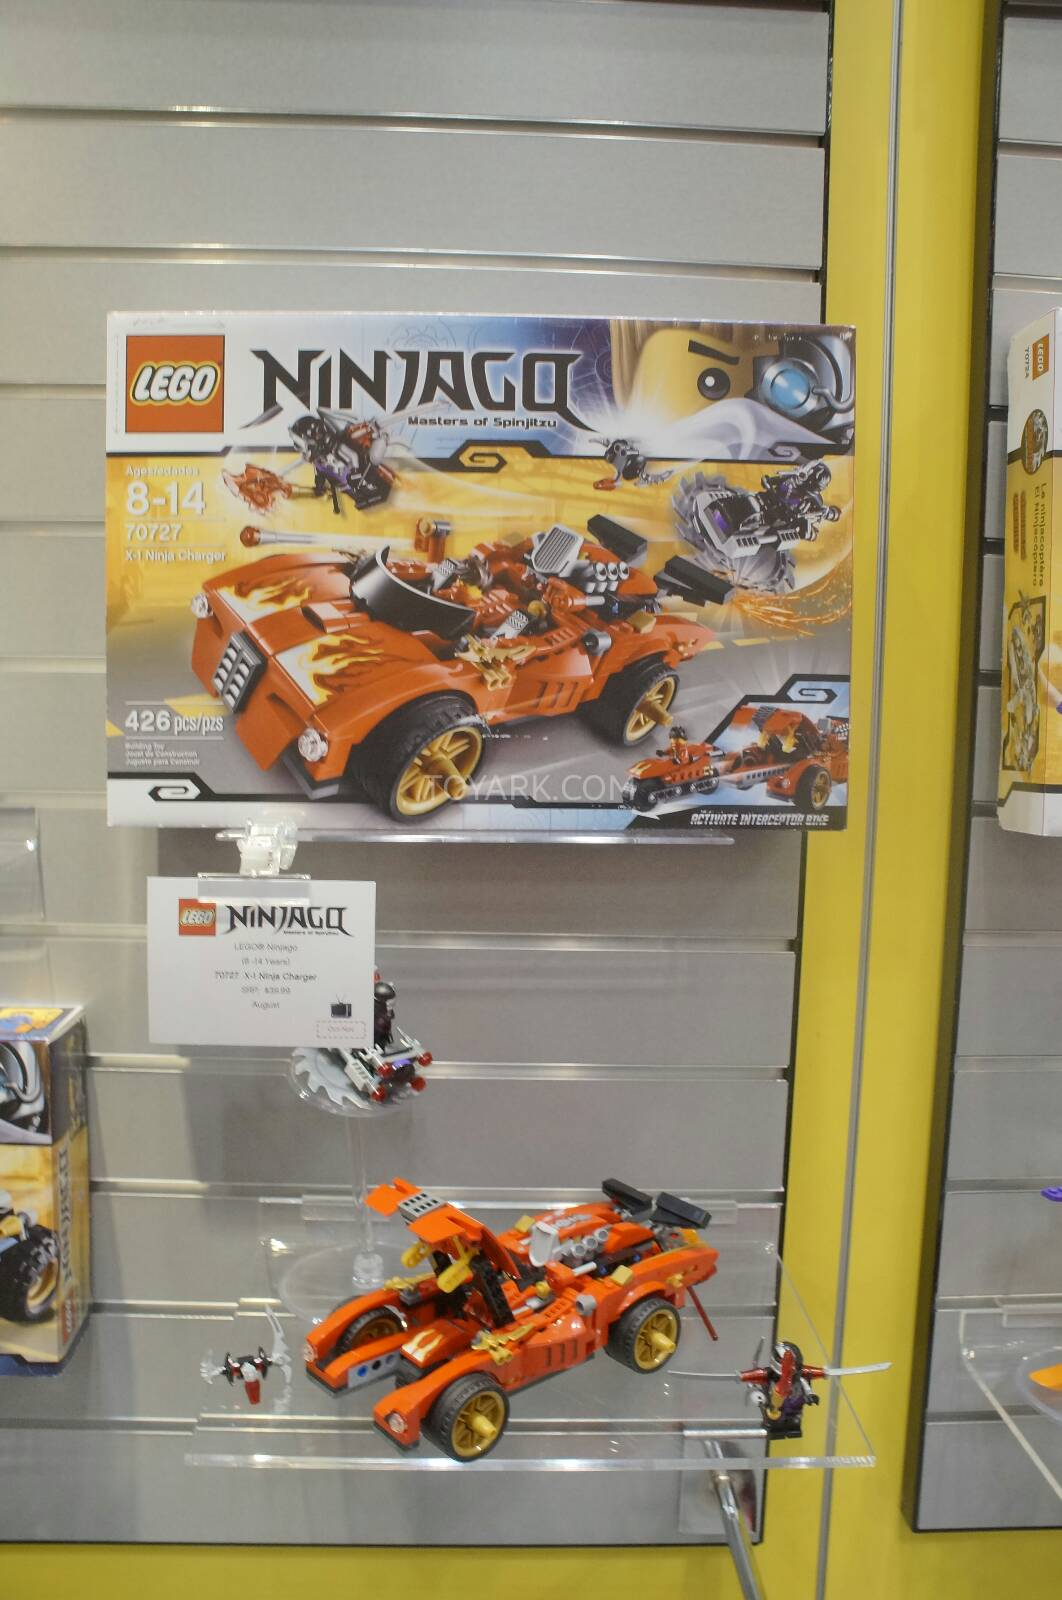 Toy-Fair-2014-LEGO-Ninjago-002.jpg